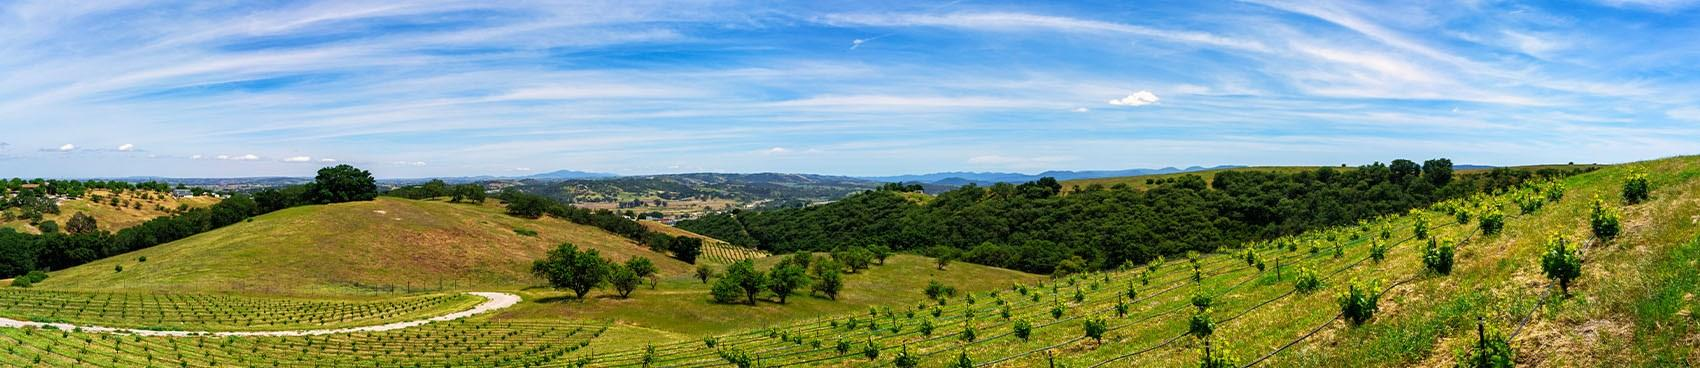 A image of Copia Vineyards and Winery